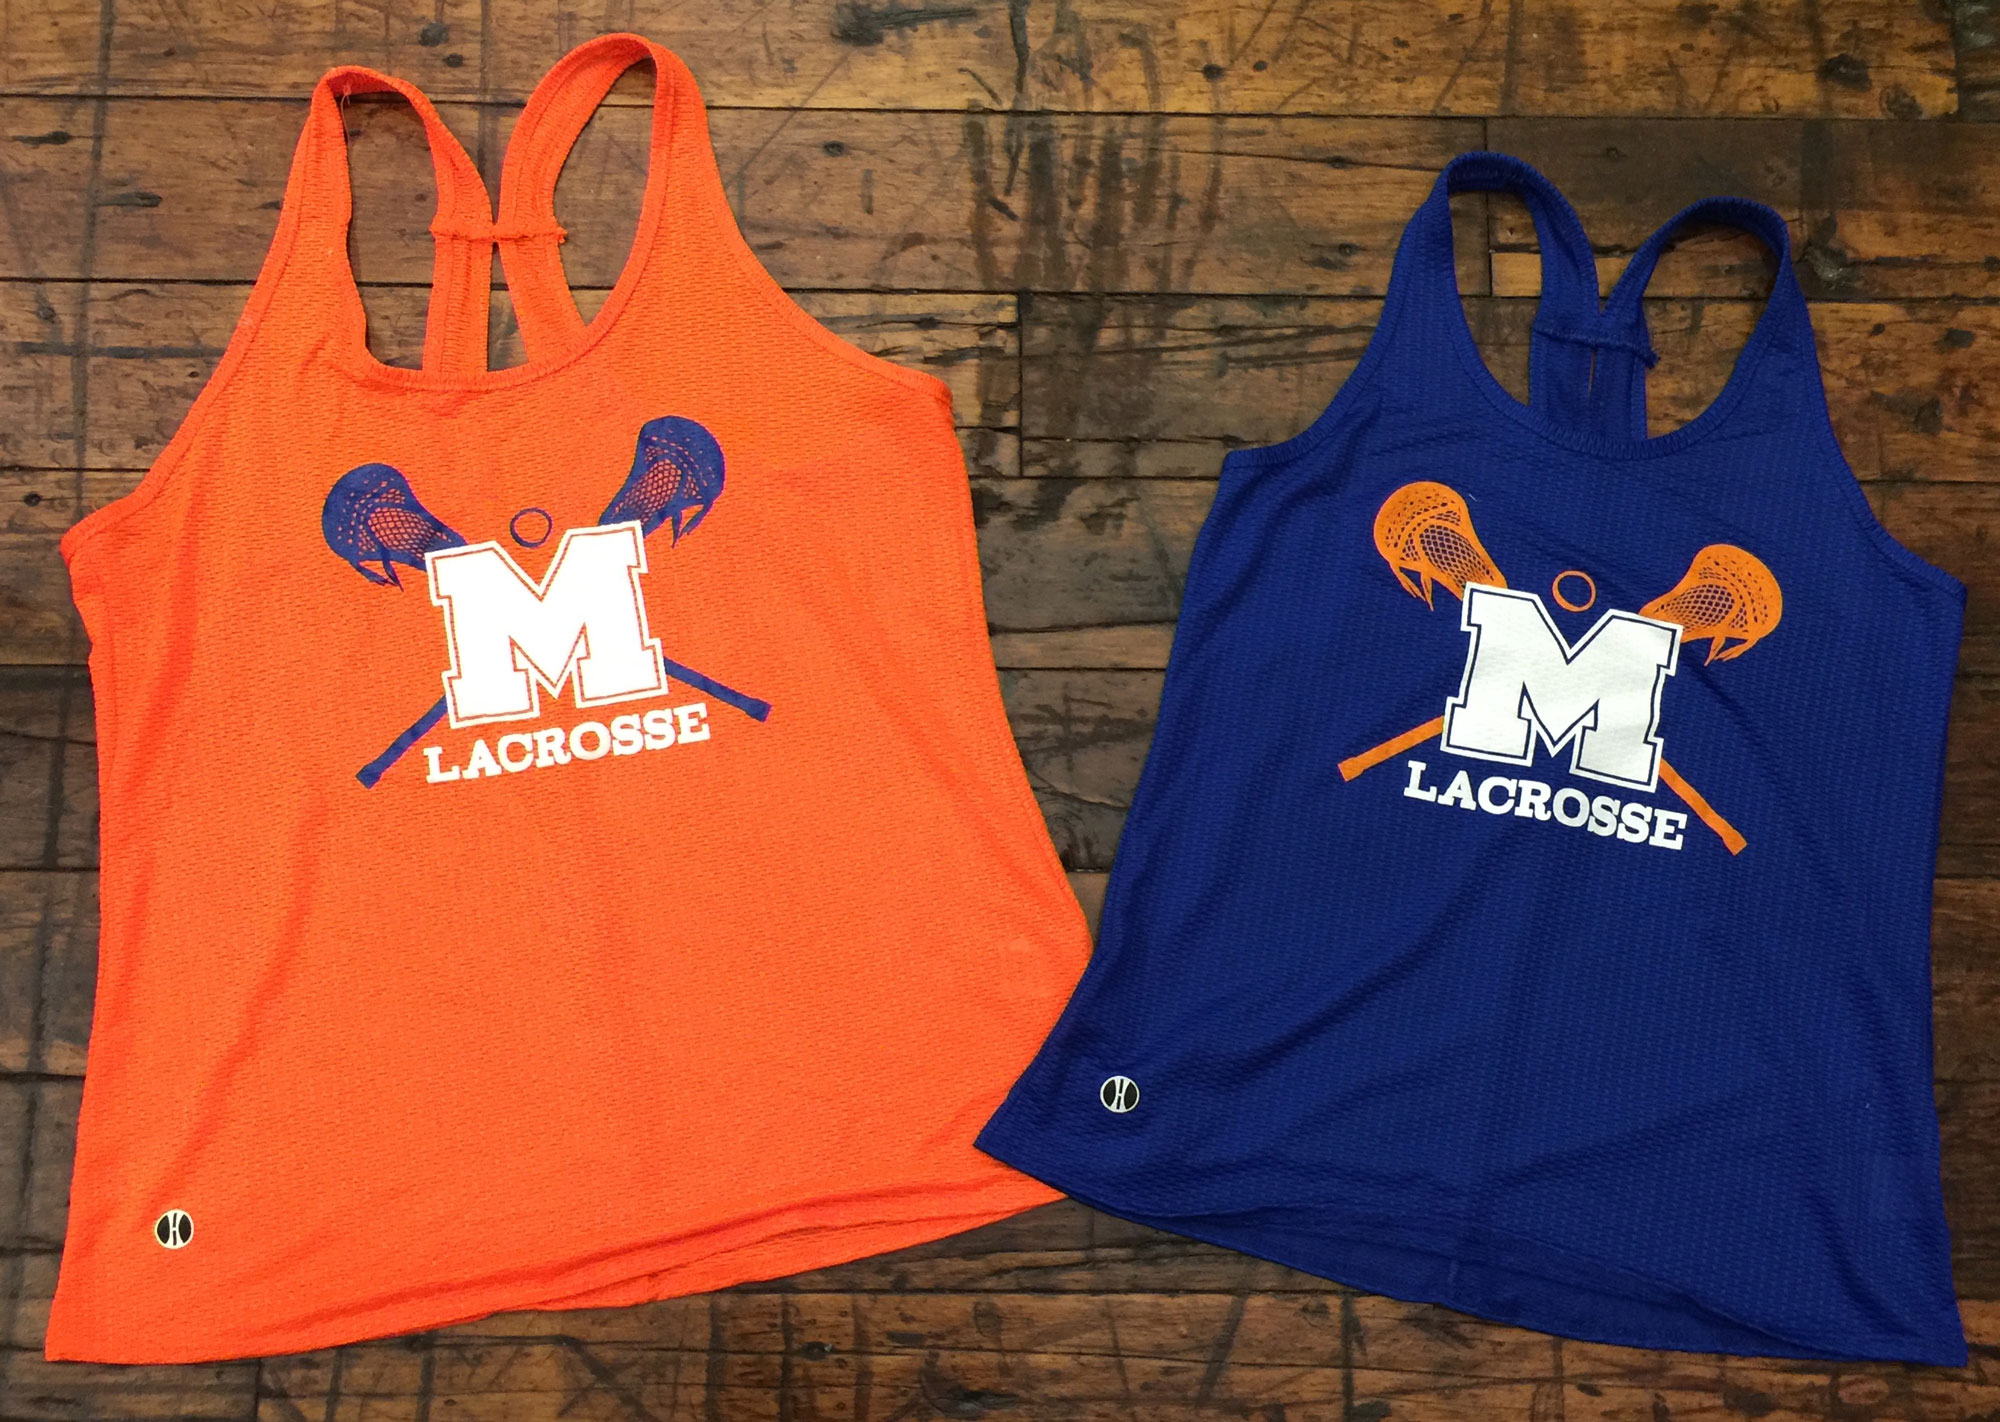 2 lacrosse tank tops with switched colors